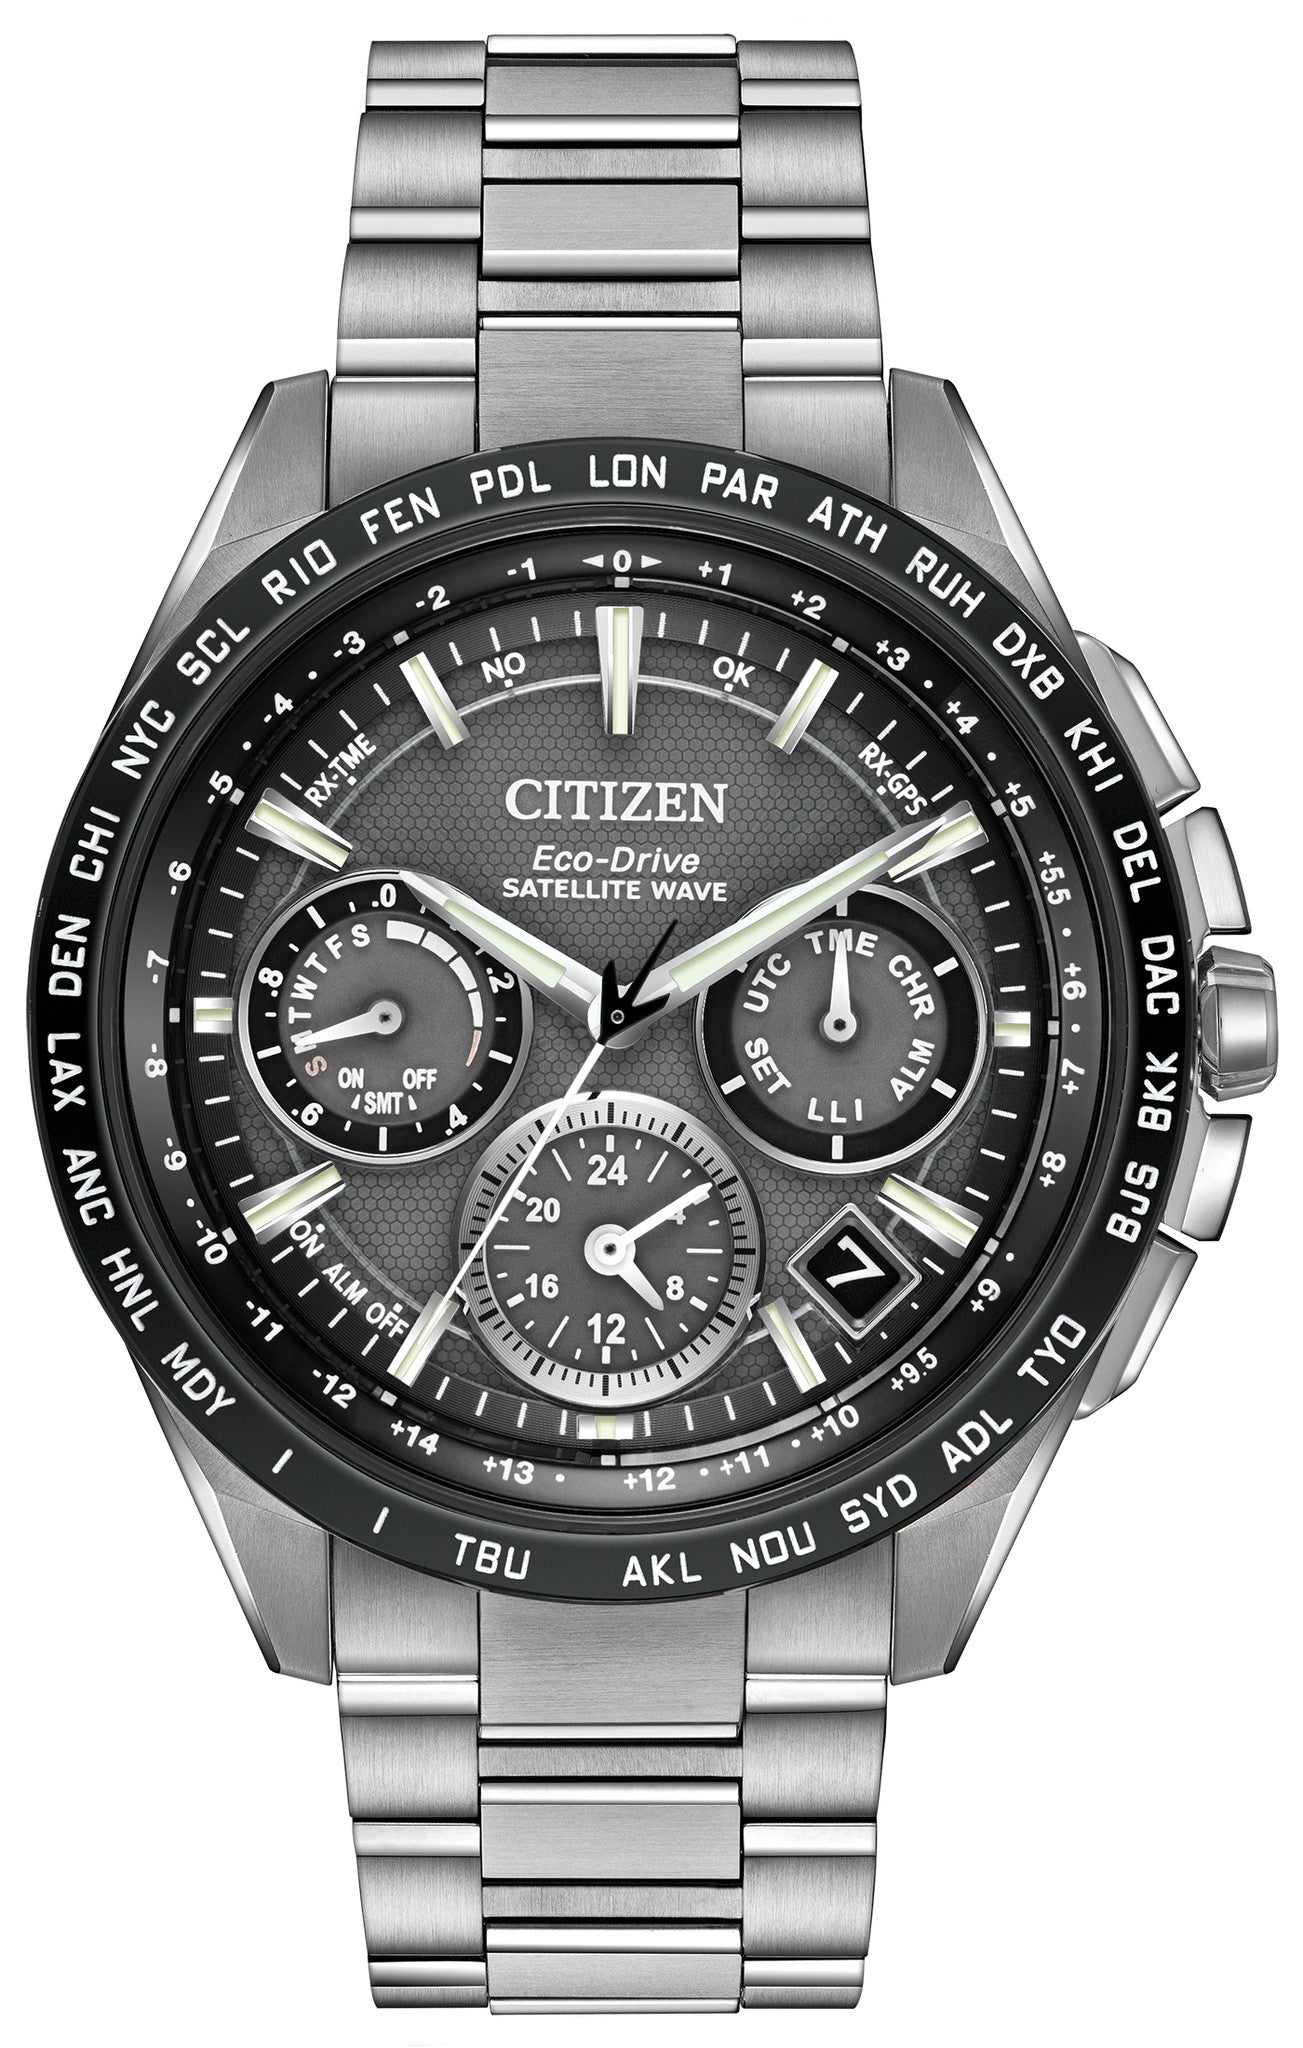 Citizen Watch Eco Drive Satellite Wave F900